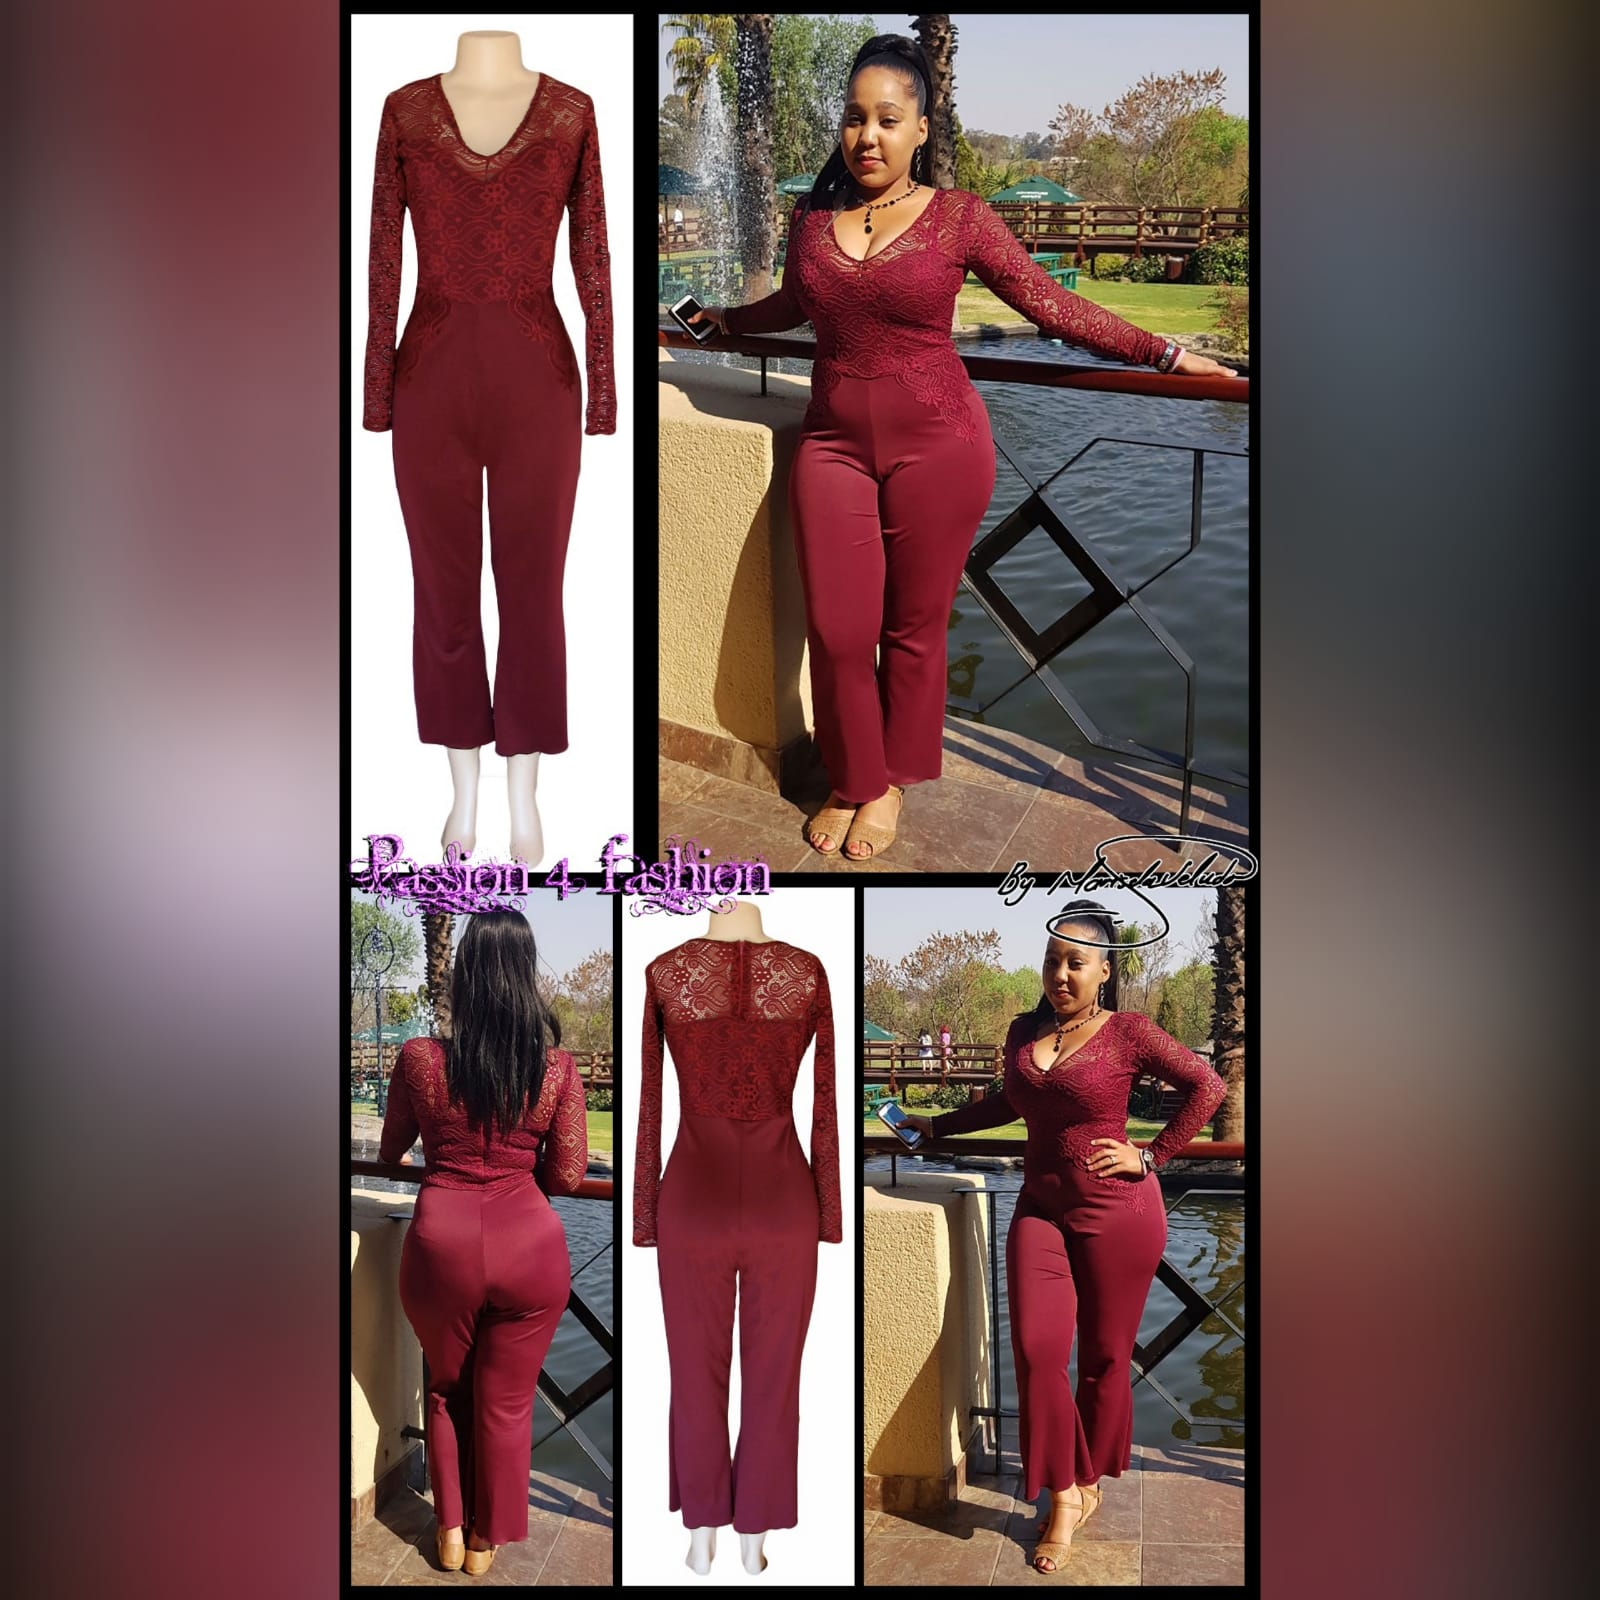 Maroon long leg evening wear bodysuit 3 maroon long leg evening wear bodysuit with a lace bodice and lace detail on the hips. With long lace sleeves.